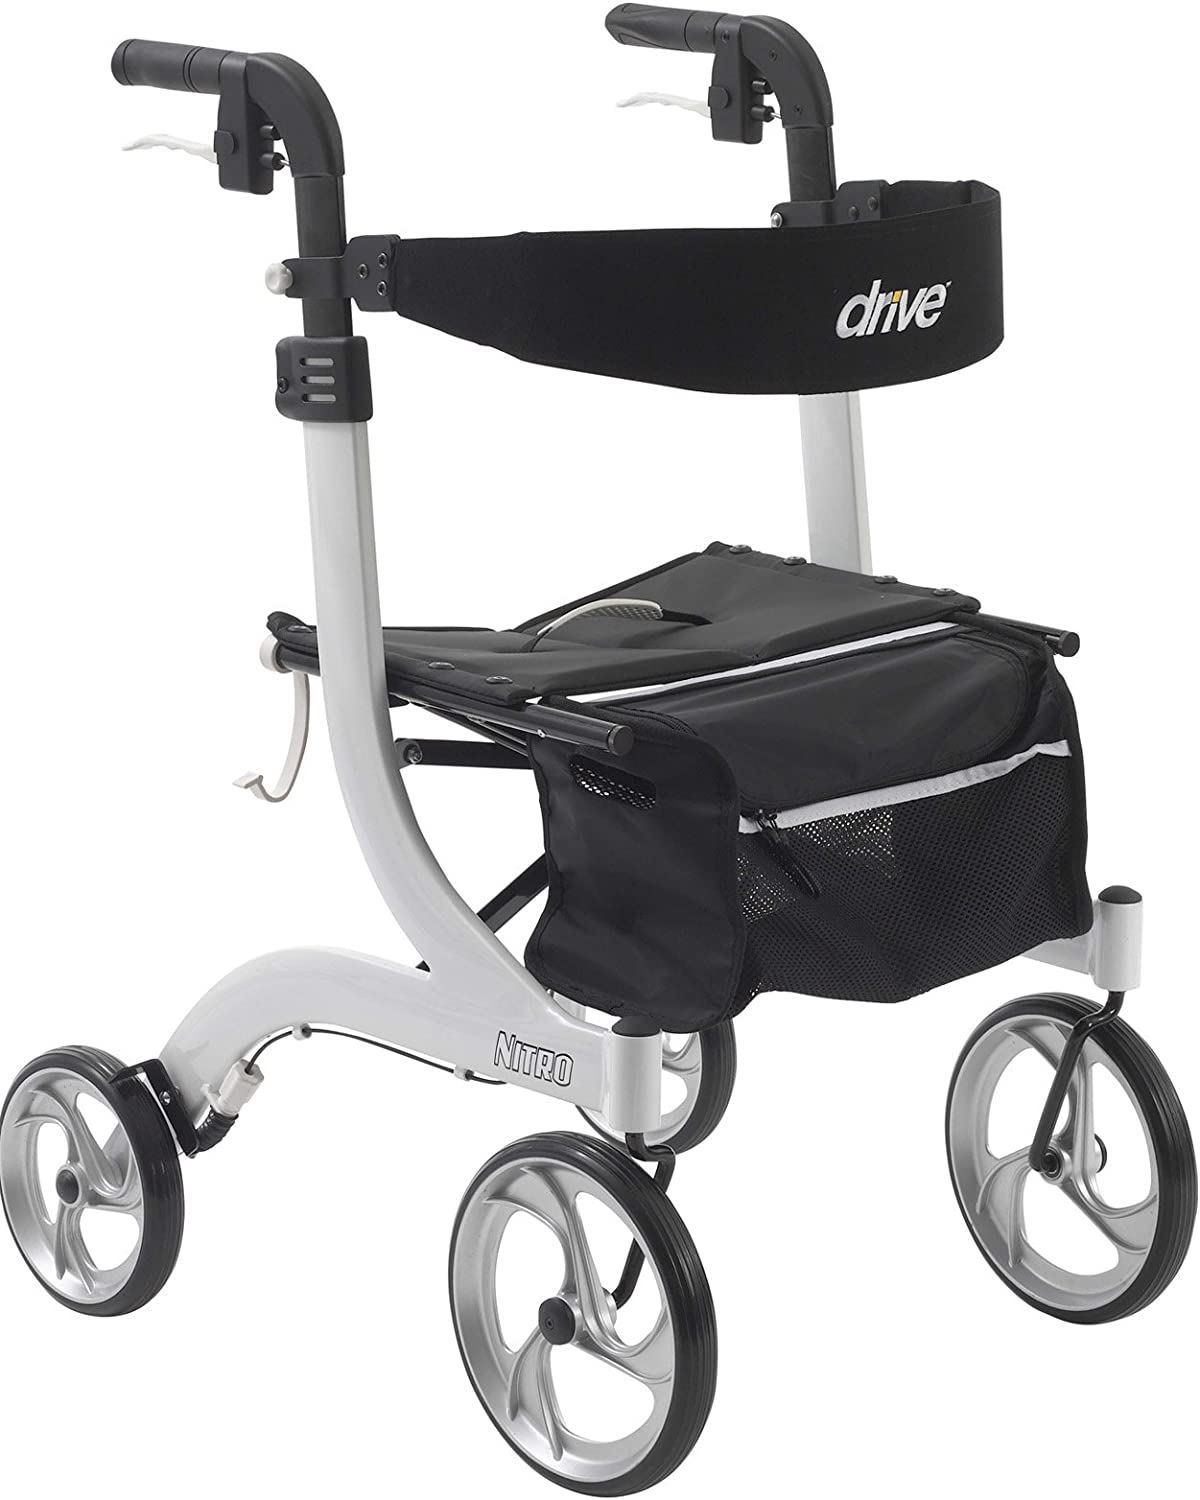 Amazon Com Drive Medical Nitro Euro Style Rollator Walker Standard Height White 1 Count Complete Medical Health Personal Care